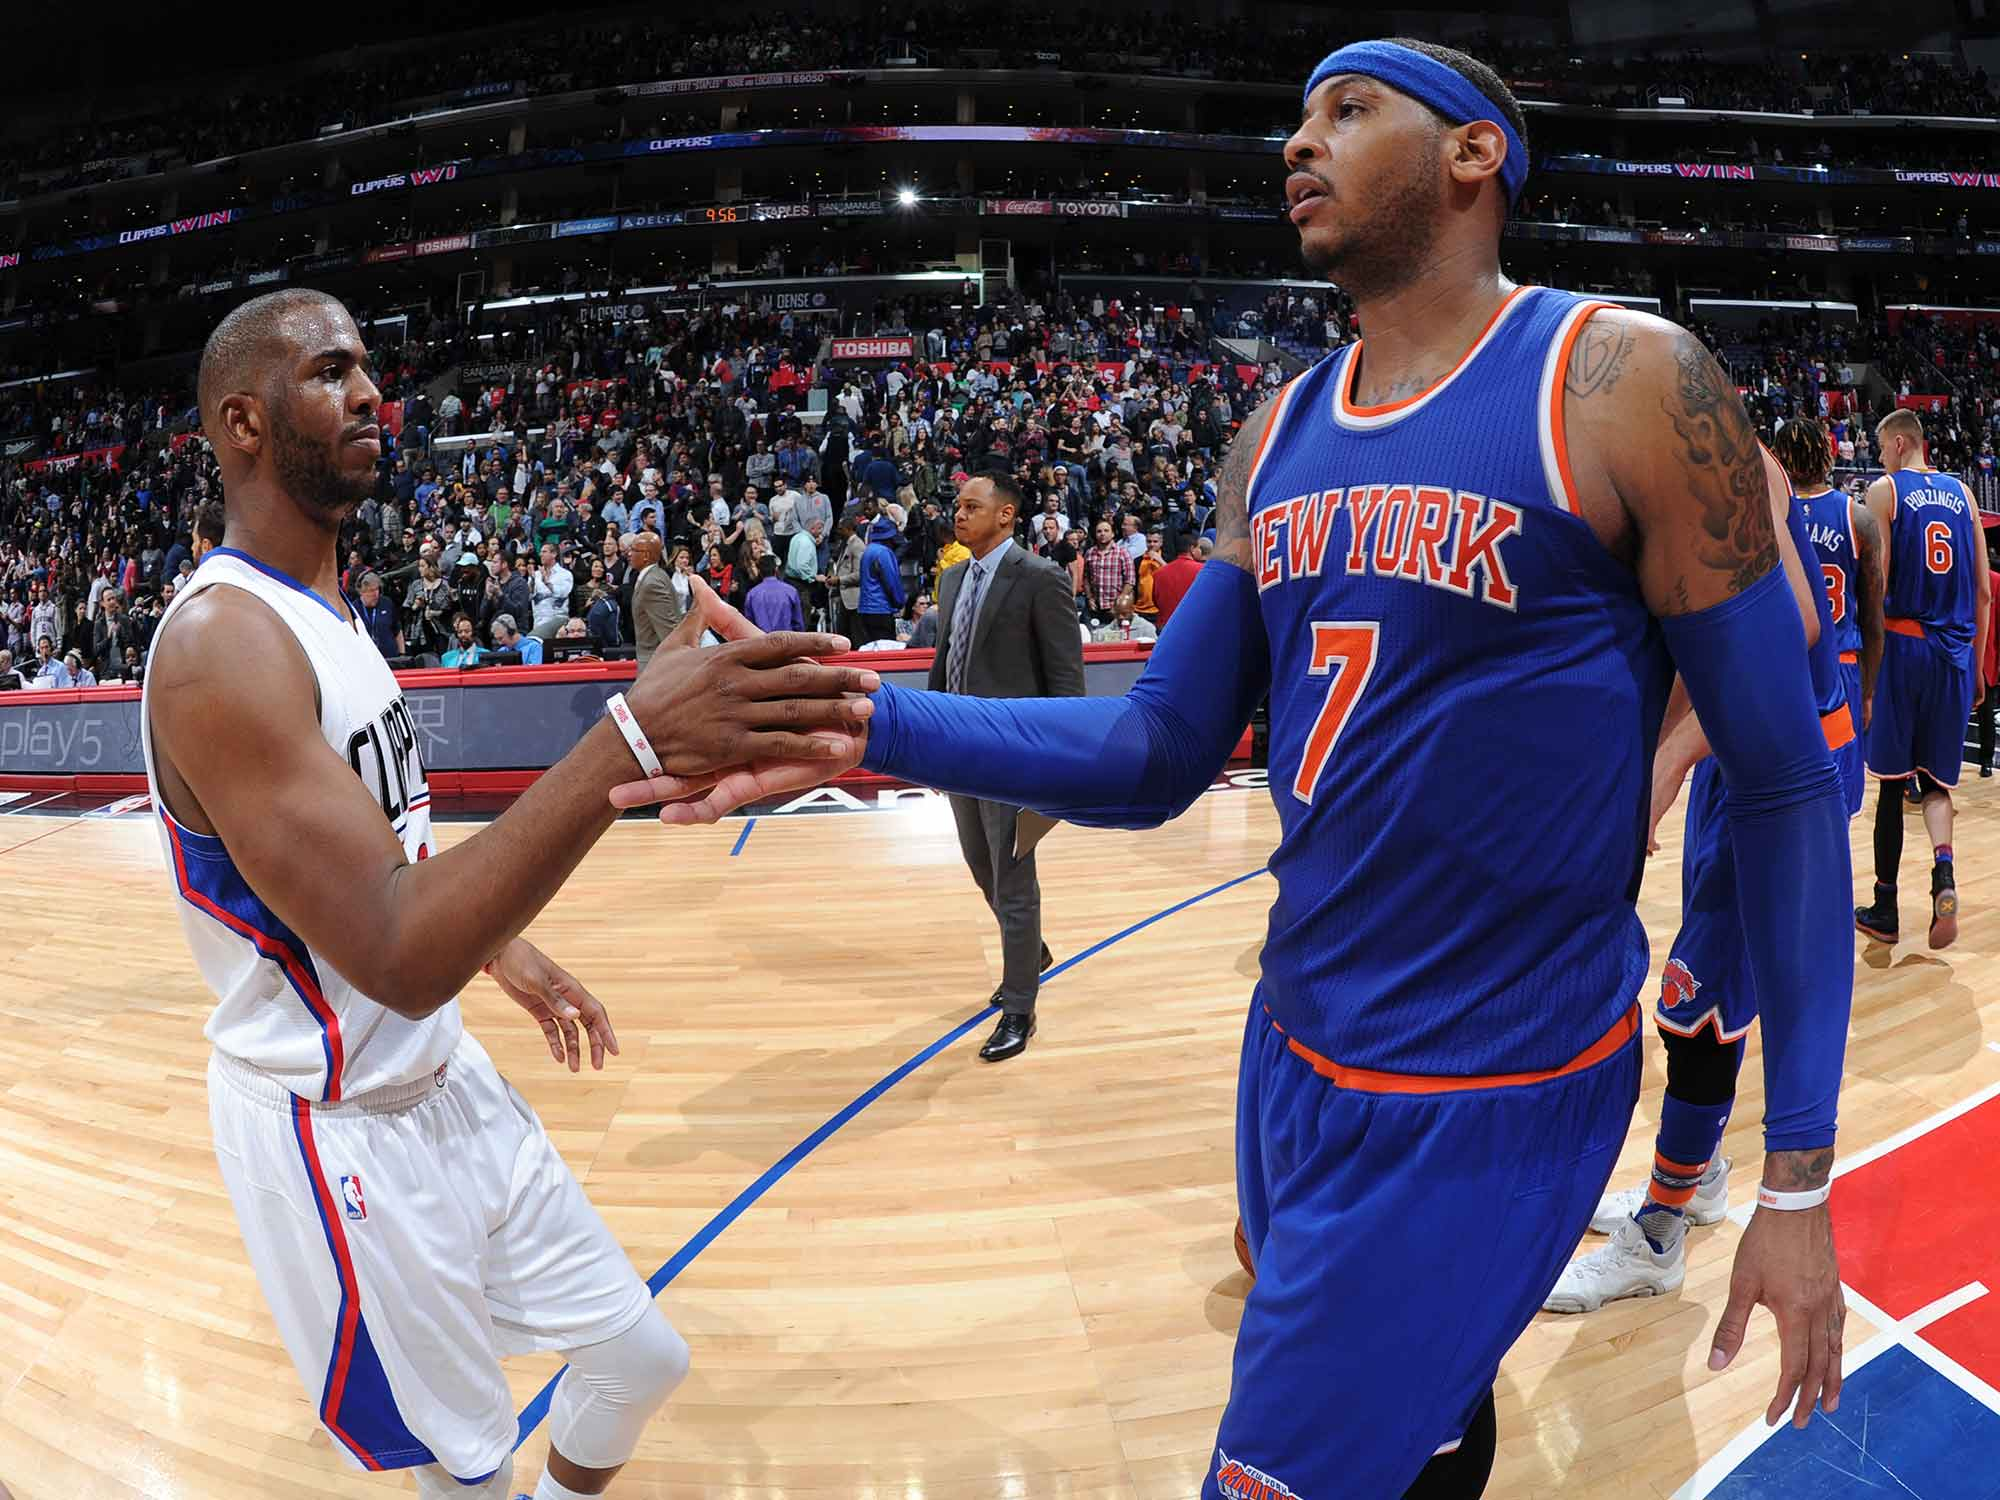 Chris Paul and Carmelo Anthony